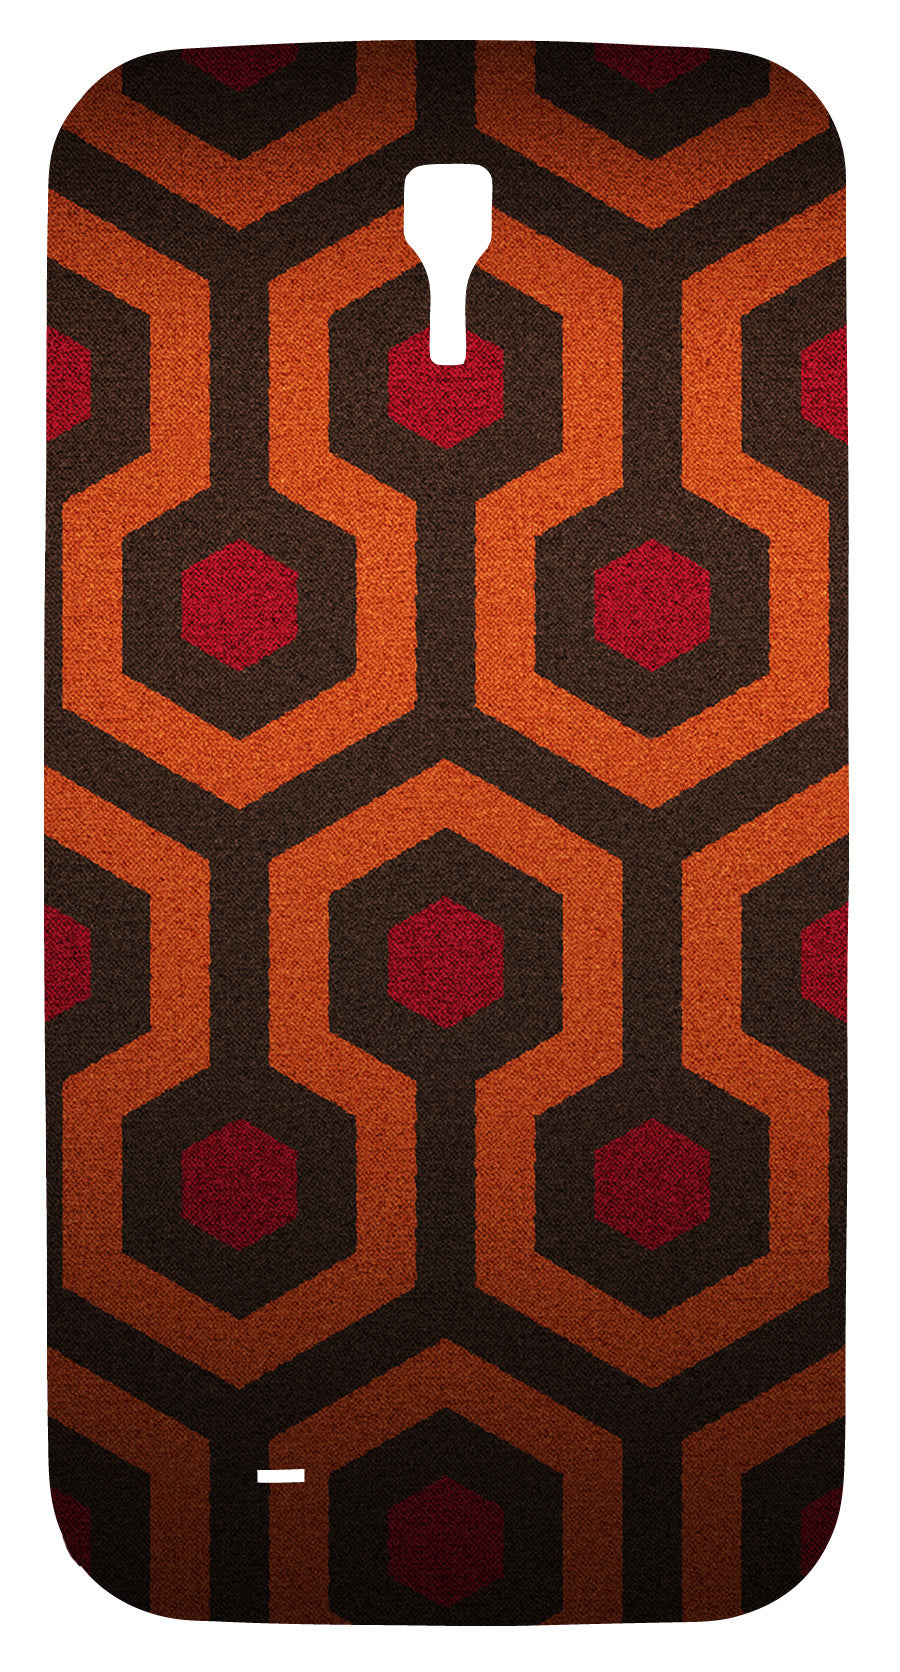 The Shining Overlook Hotel S4 Phone Case